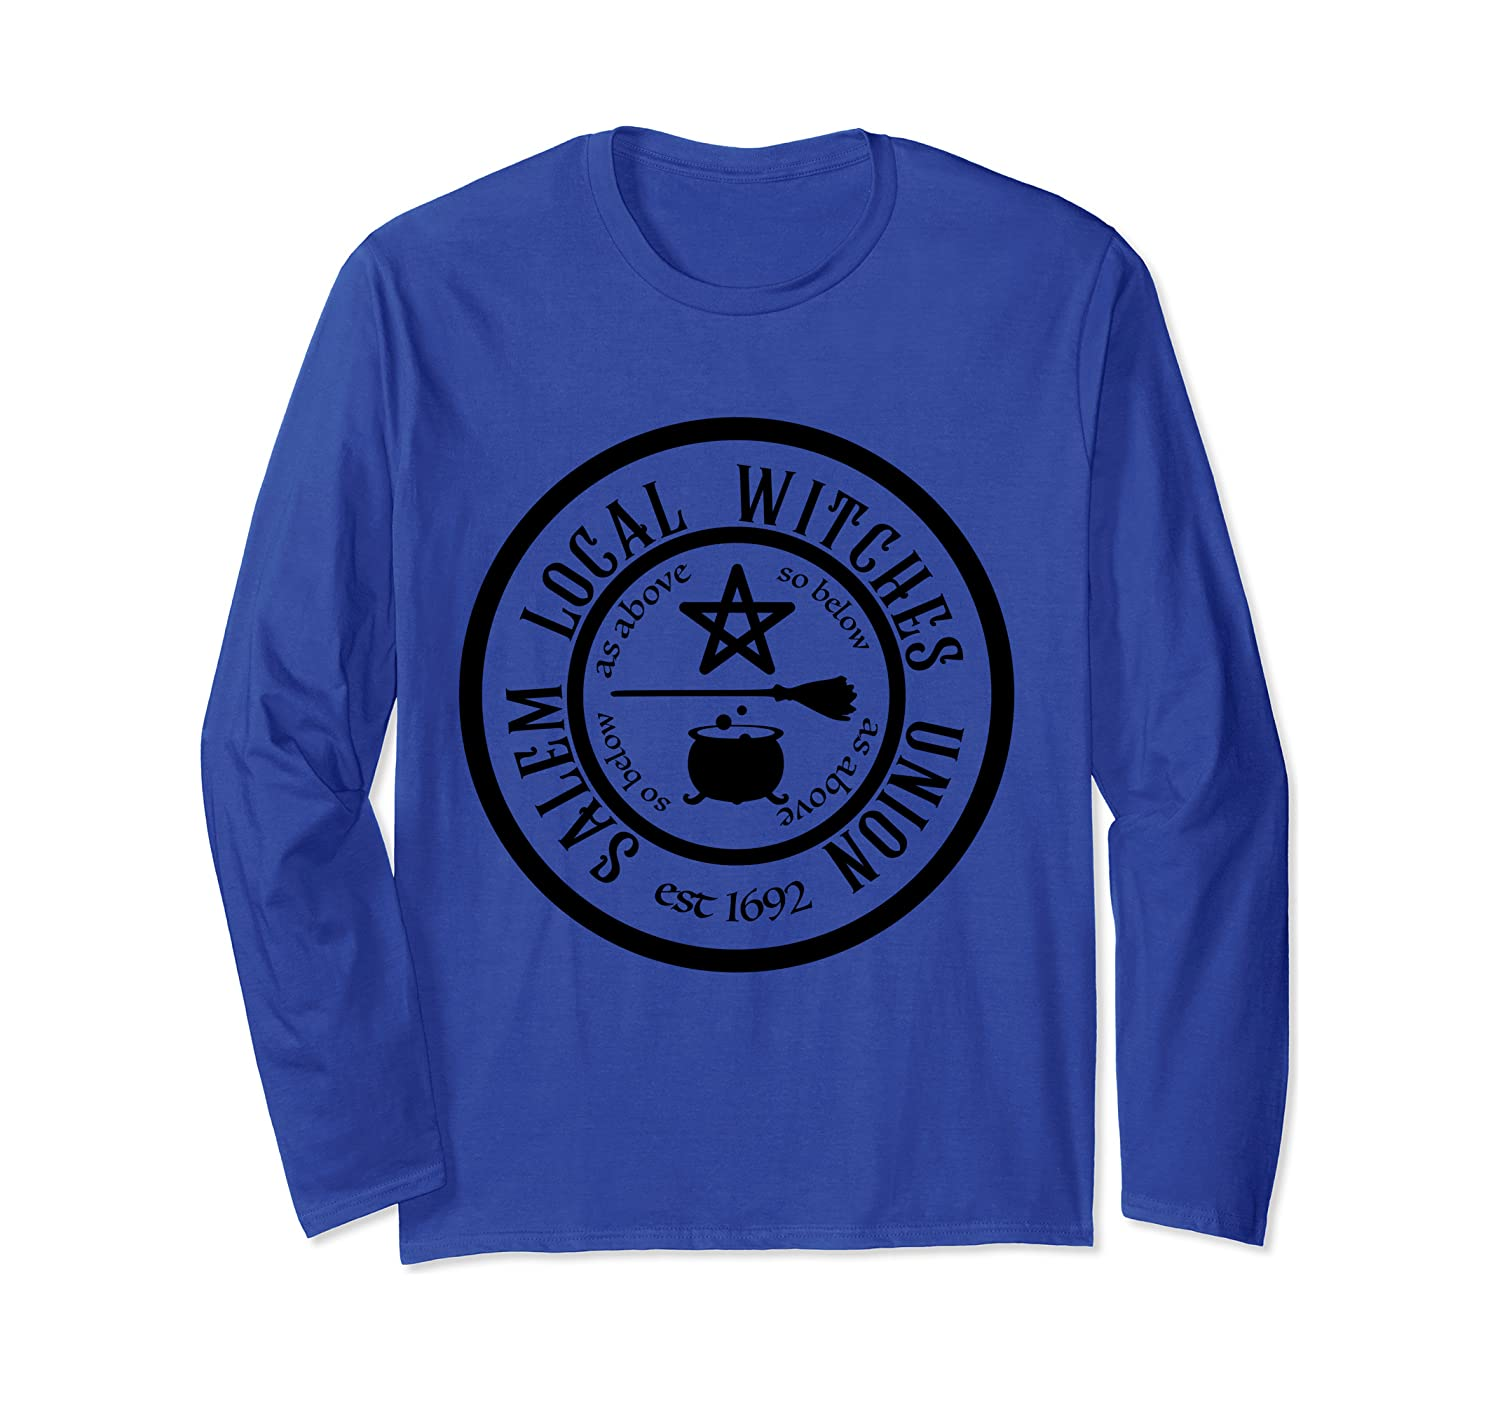 Salem Local Witches Union est 1692 Halloween Long Sleeve T-Shirt-SFS